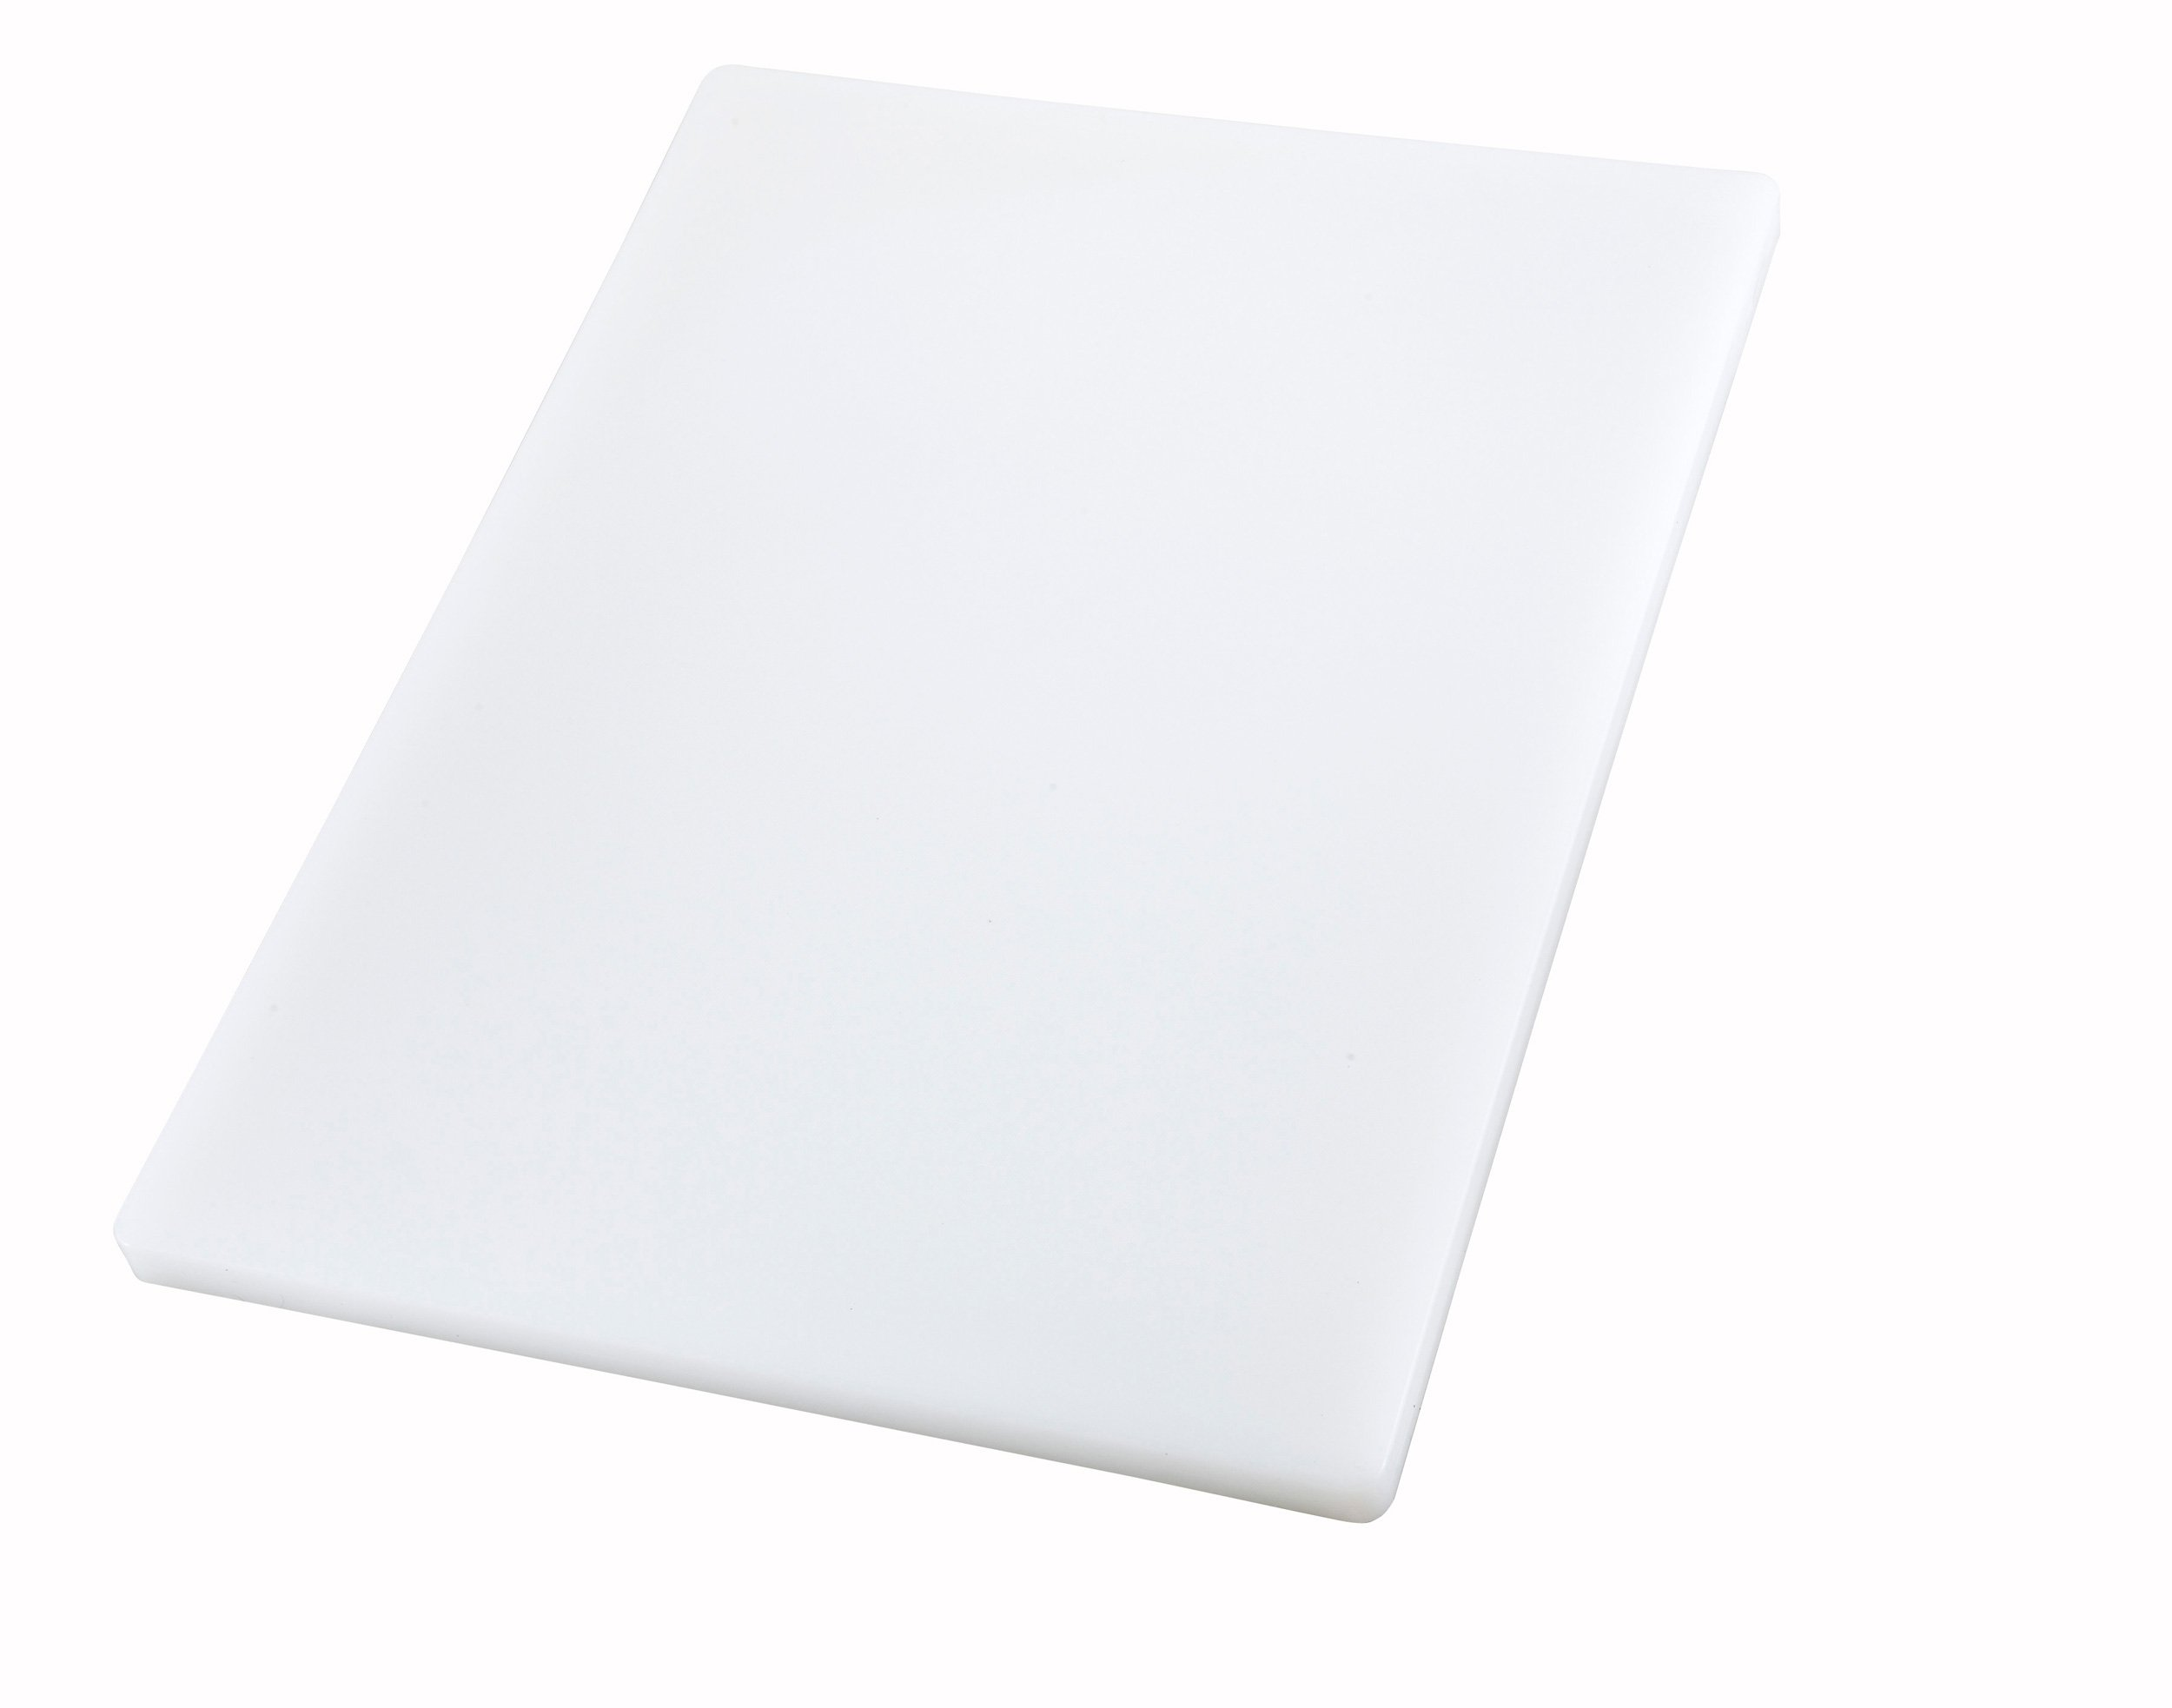 Winco Cutting Board, 12 by 18 by 1-Inch, White